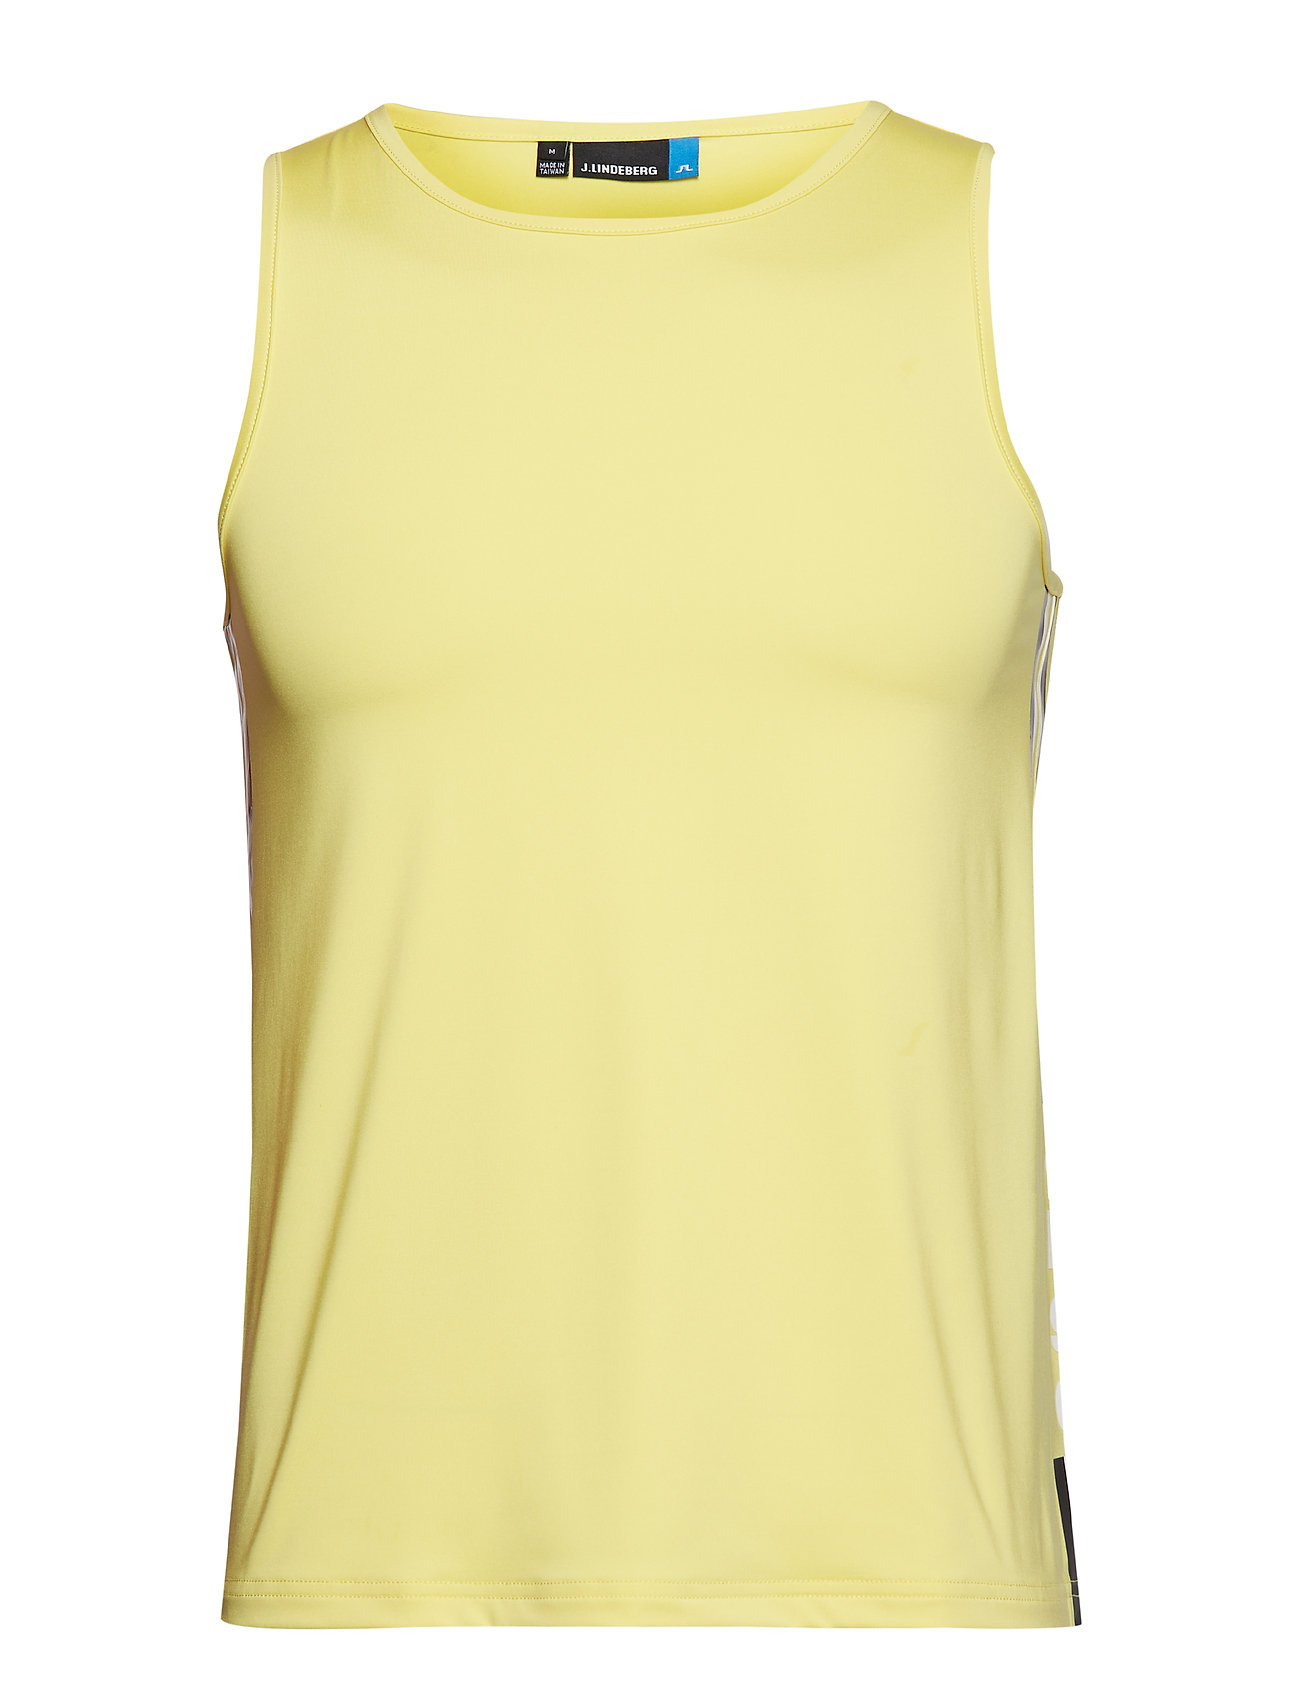 J. Lindeberg W ELLA POLY JERSEY - BUTTER YELLOW